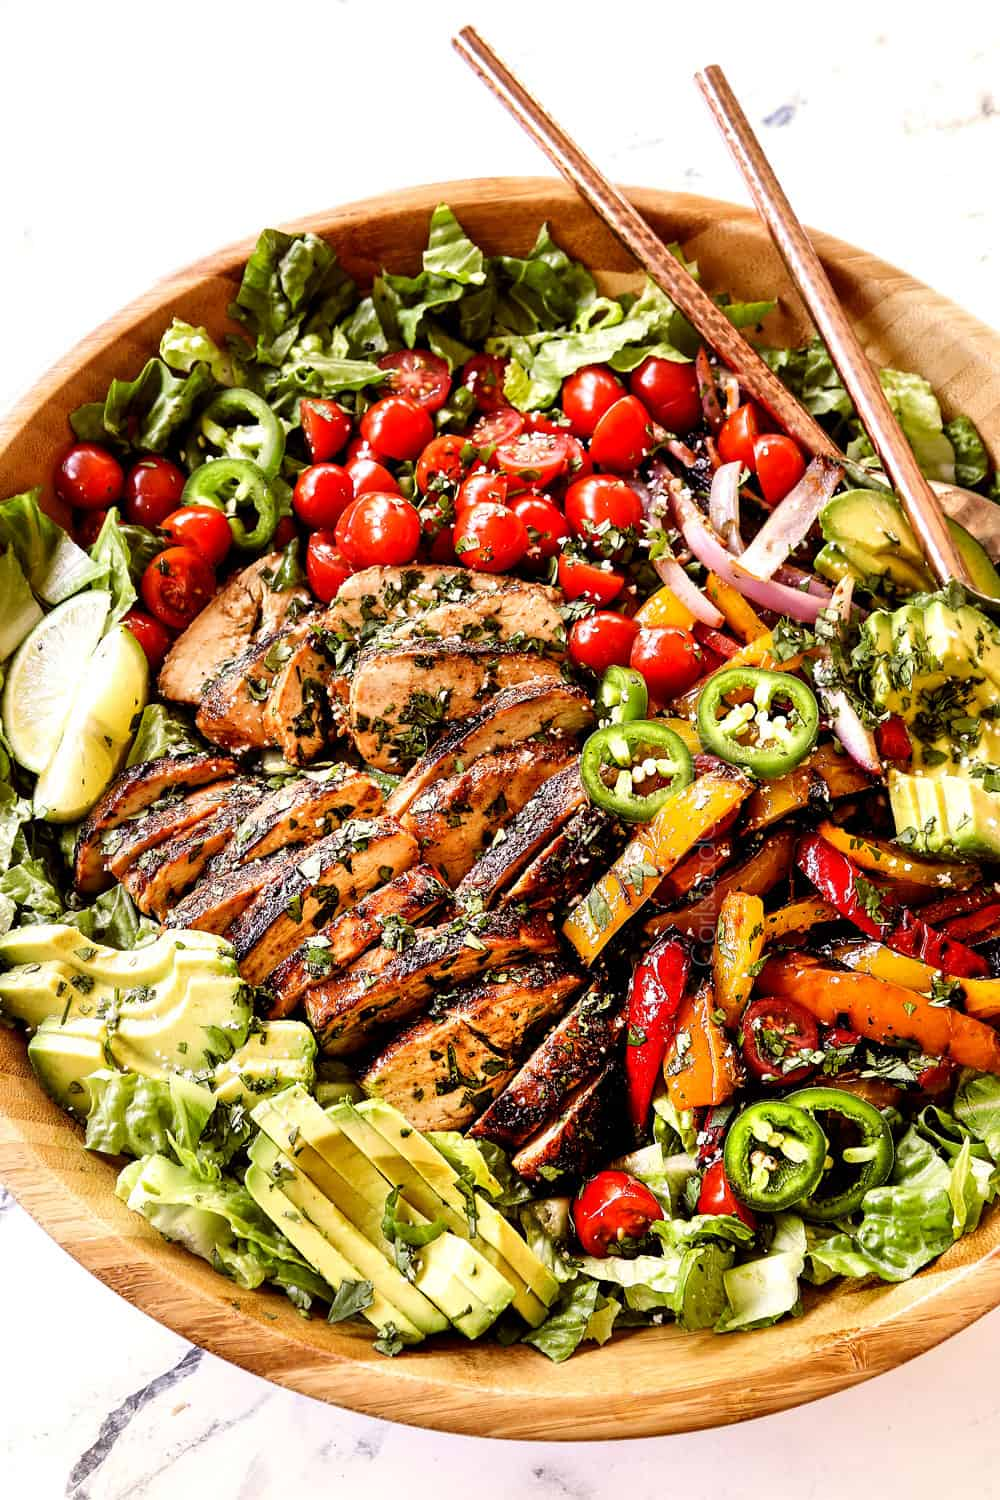 chicken fajita salad (chicken salad recipe) with chicken, bell peppers, red onions, tomatoes, avocados, cilantro in a wood bowl